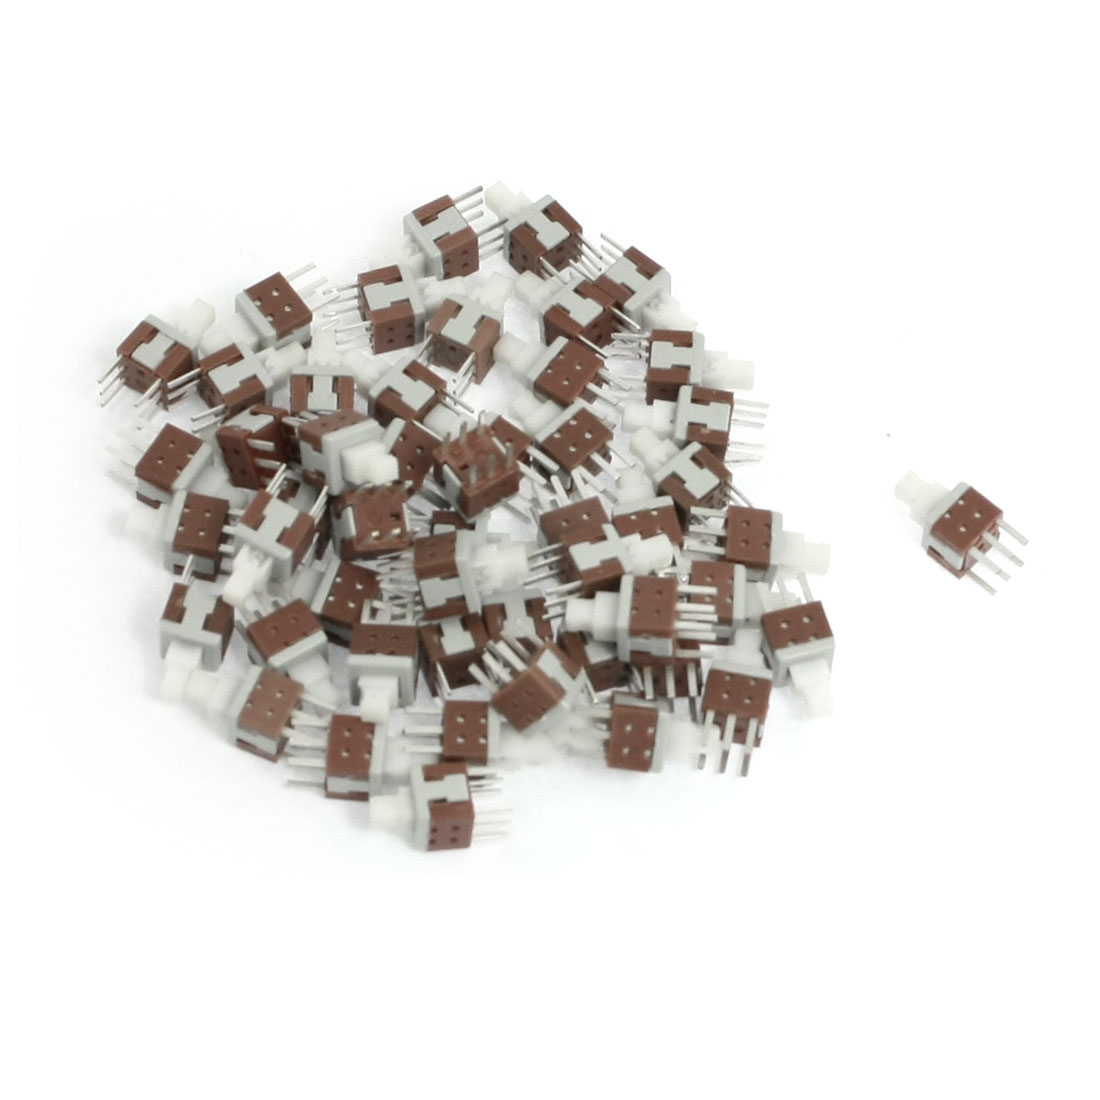 50 Pcs Latching Contat Torch Mini Push Button Switches 5.8mm x 5.8mm